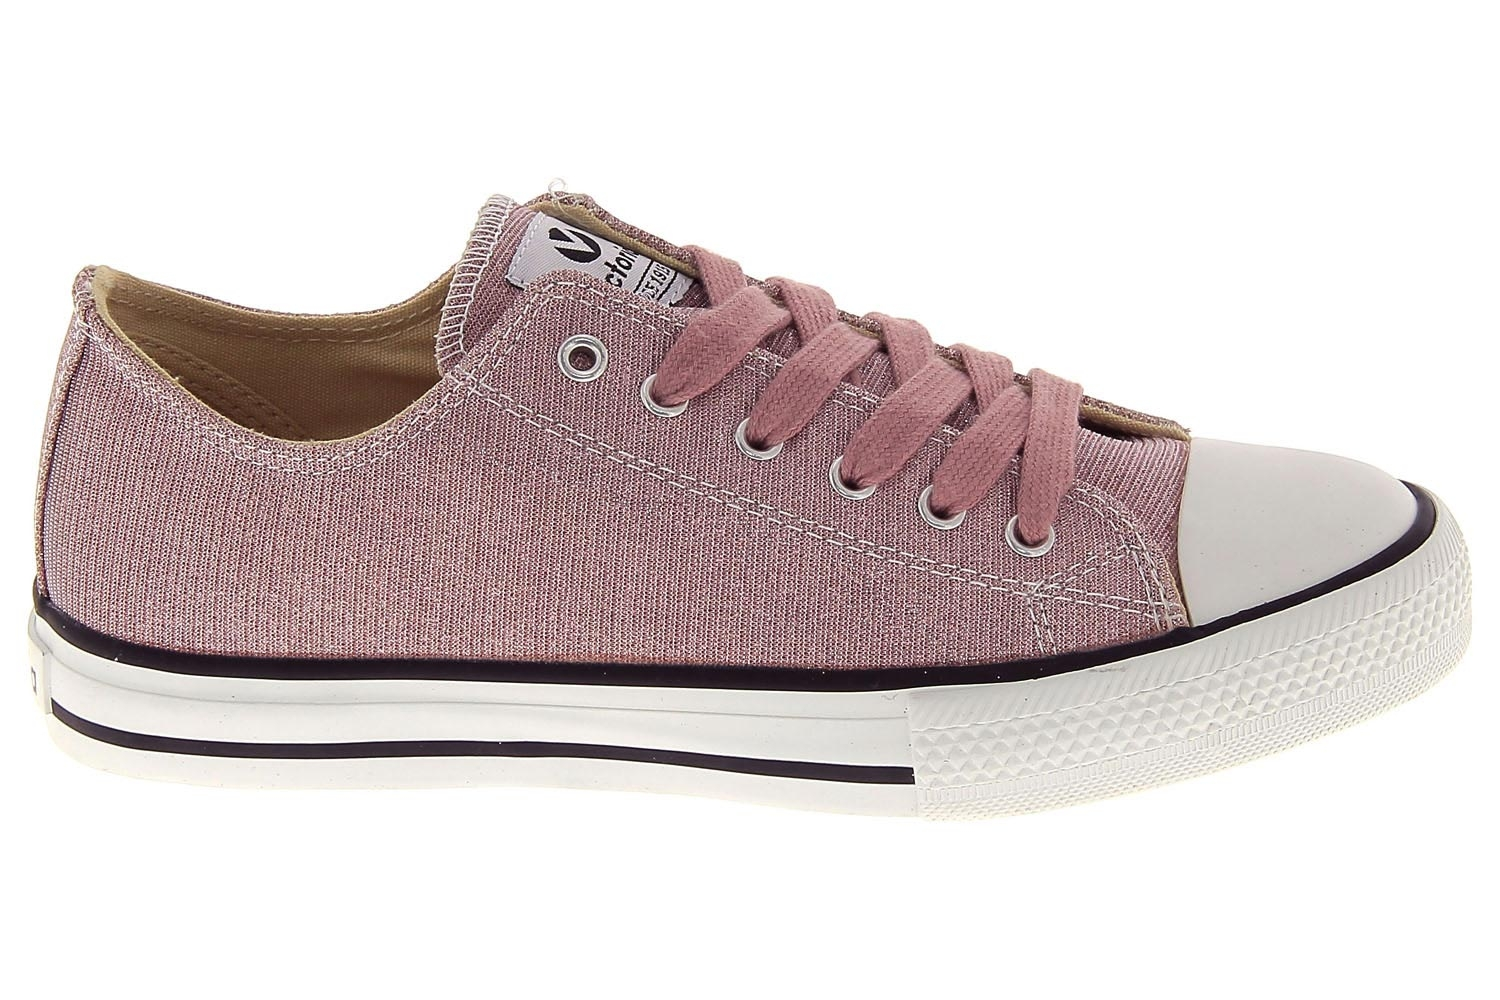 Chaussures en toile toile toile victoria rose 1065108 chaussures femme victoria 1a45a8